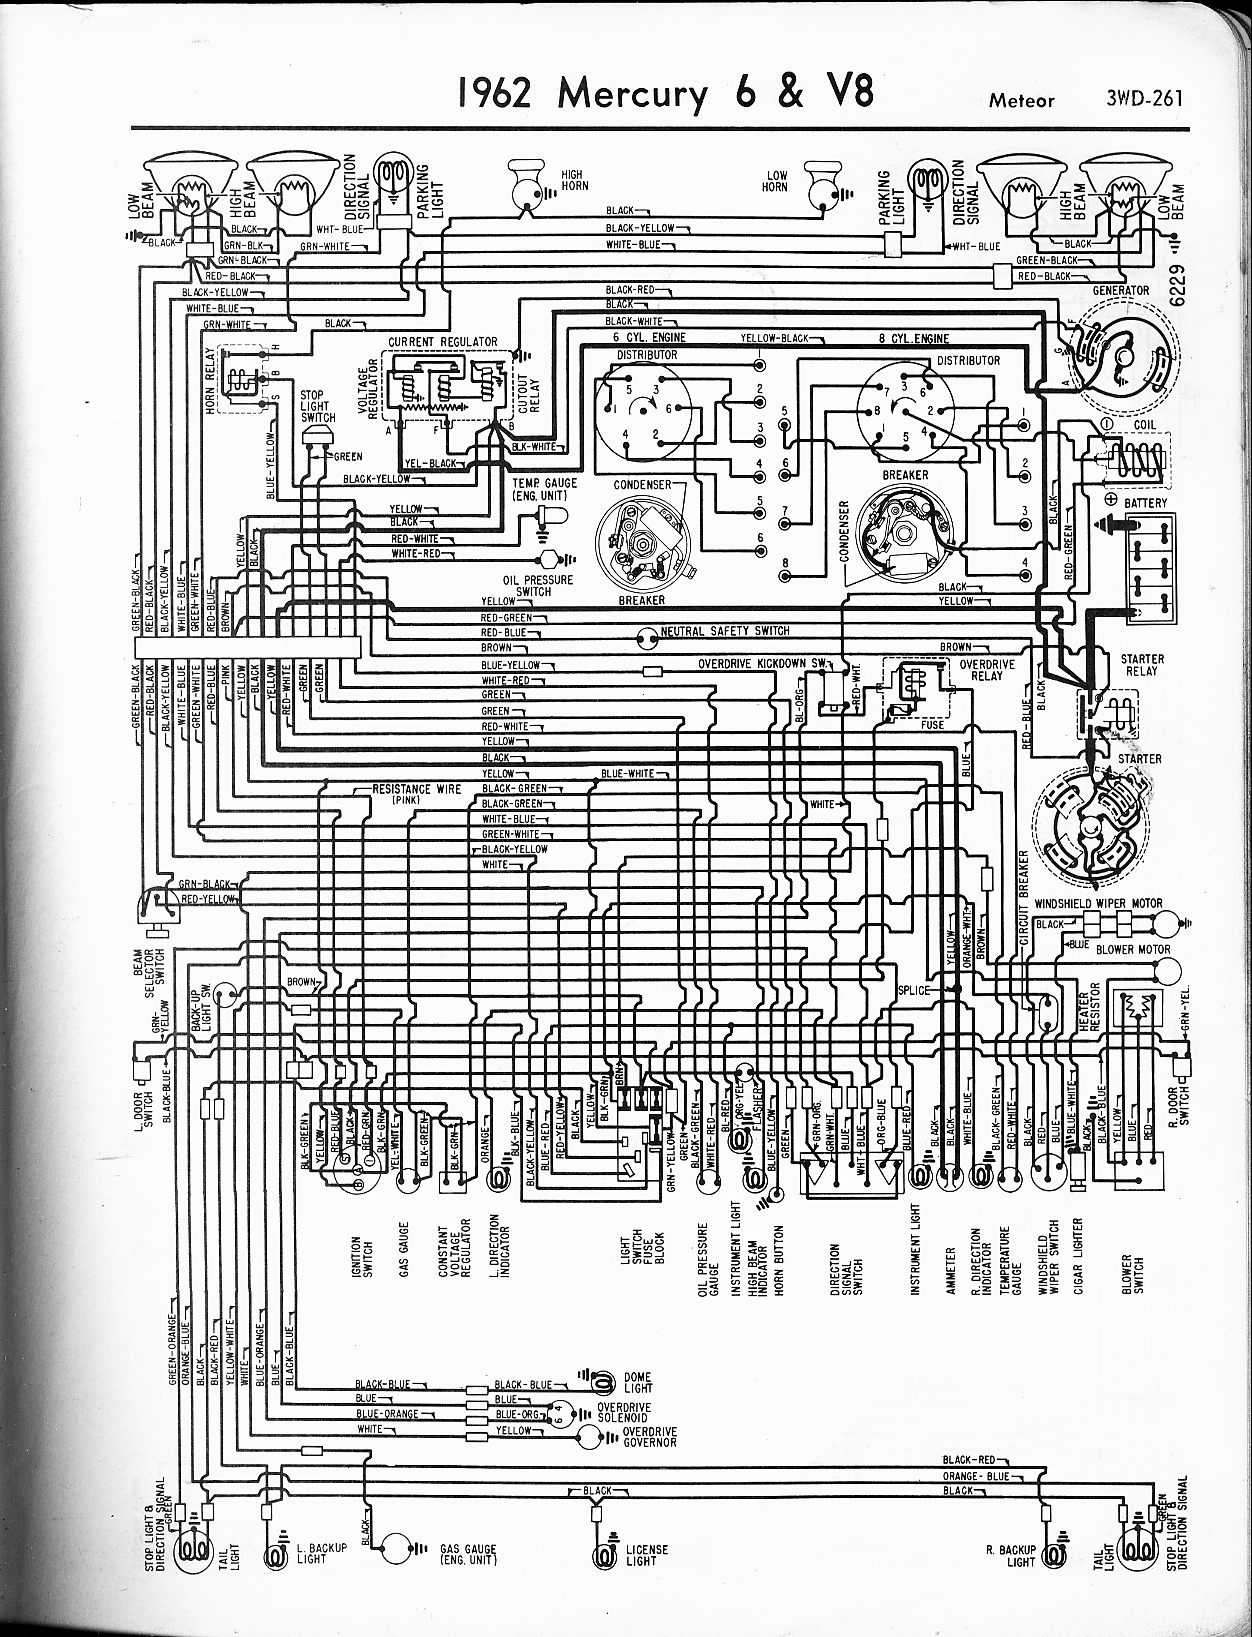 1964 mercury wiring diagram 1964 get free image about. Black Bedroom Furniture Sets. Home Design Ideas